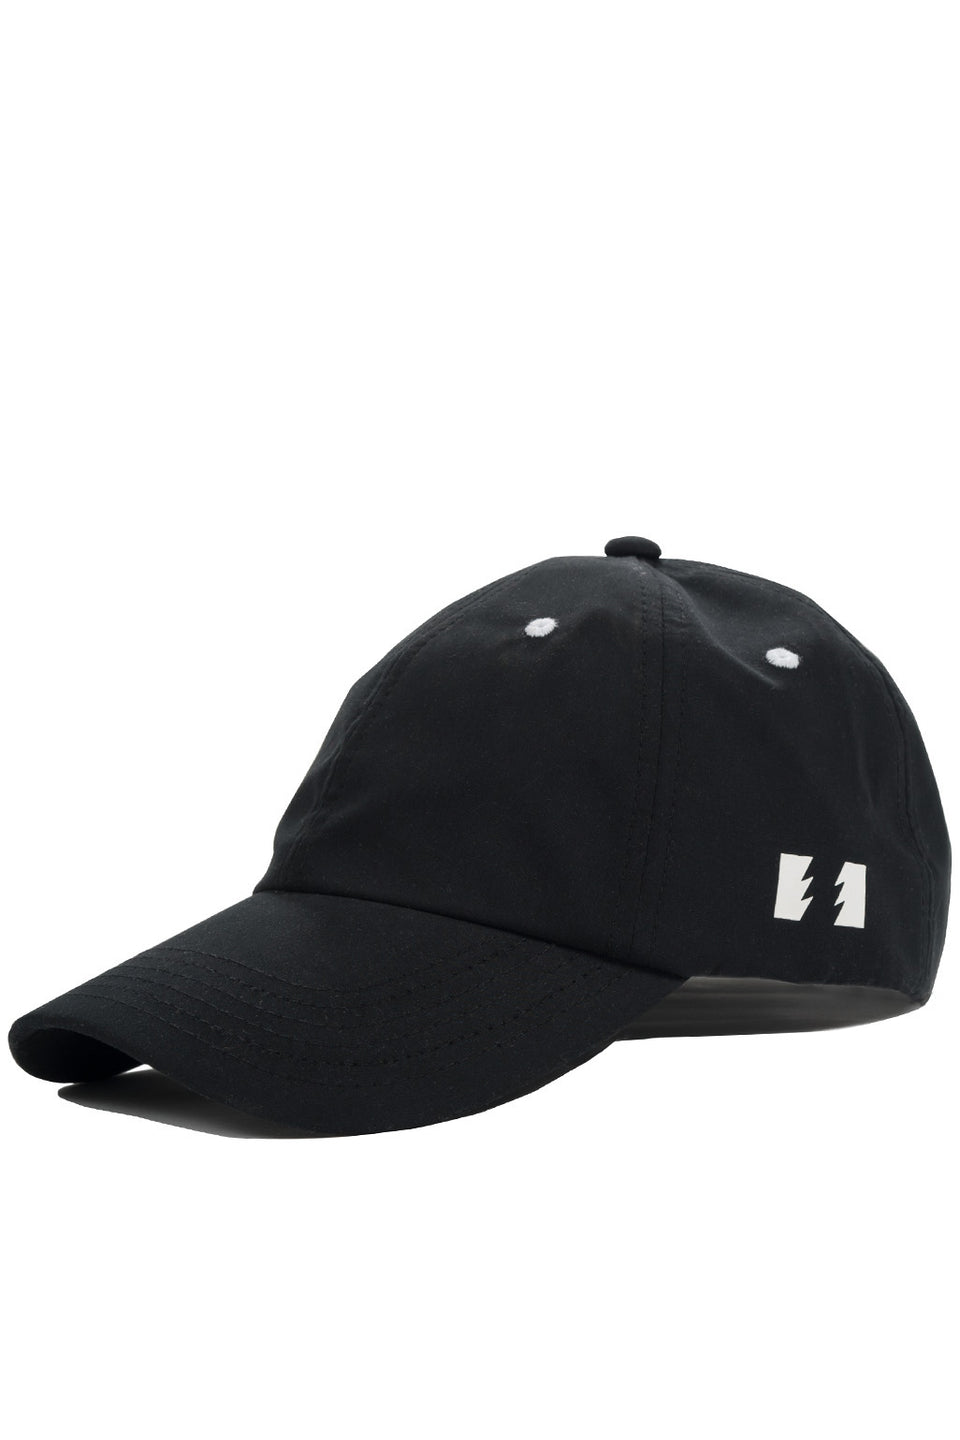 Rev Dad Hat